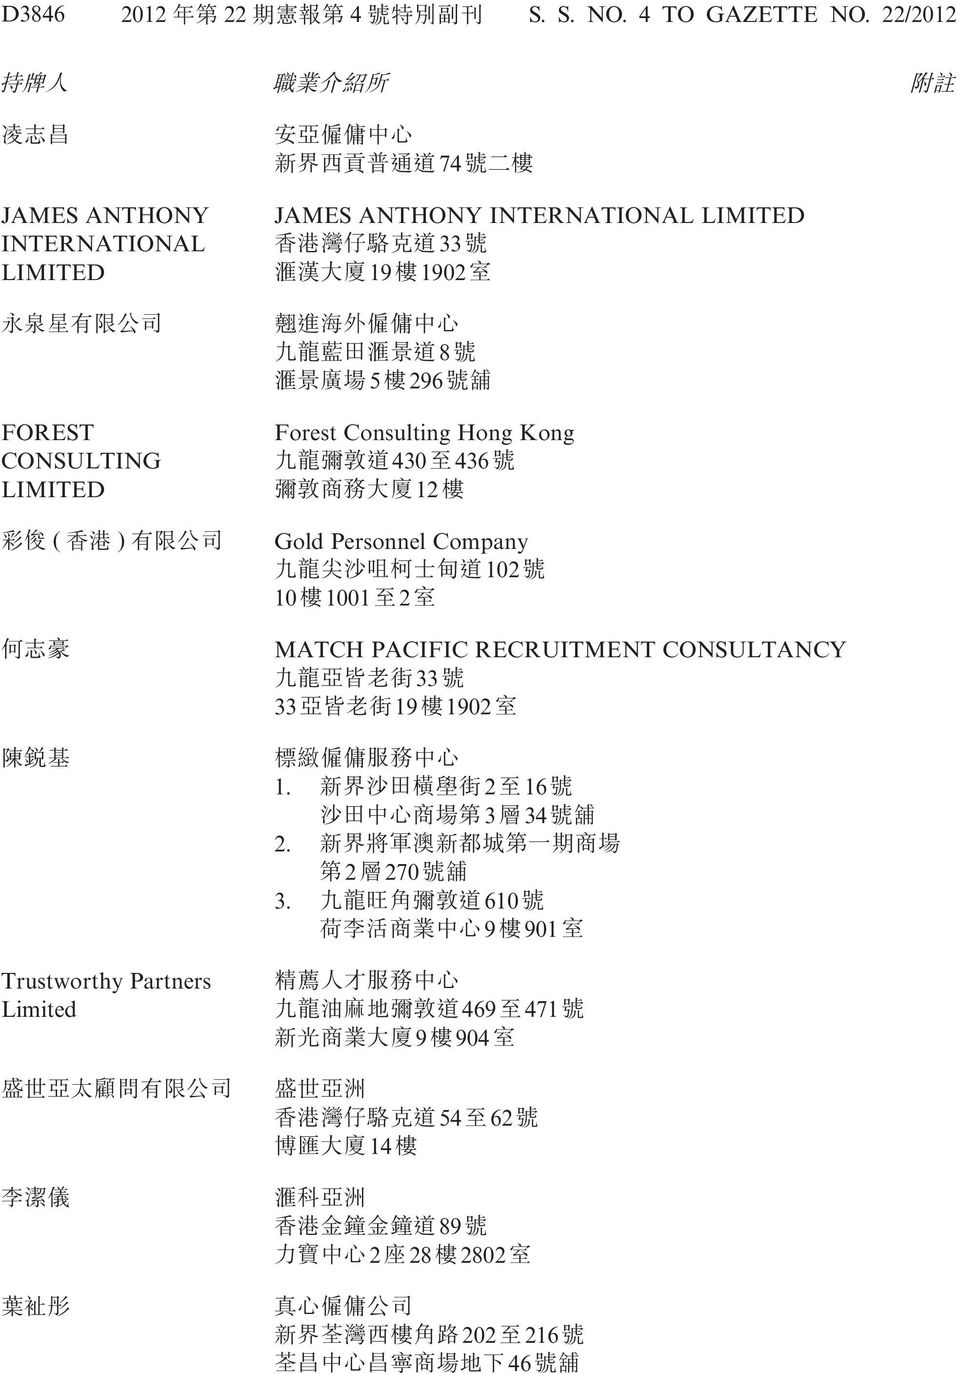 INTERNATIONAL 33 19 1902 8 5 296 Forest Consulting Hong Kong 430 436 12 Gold Personnel Company